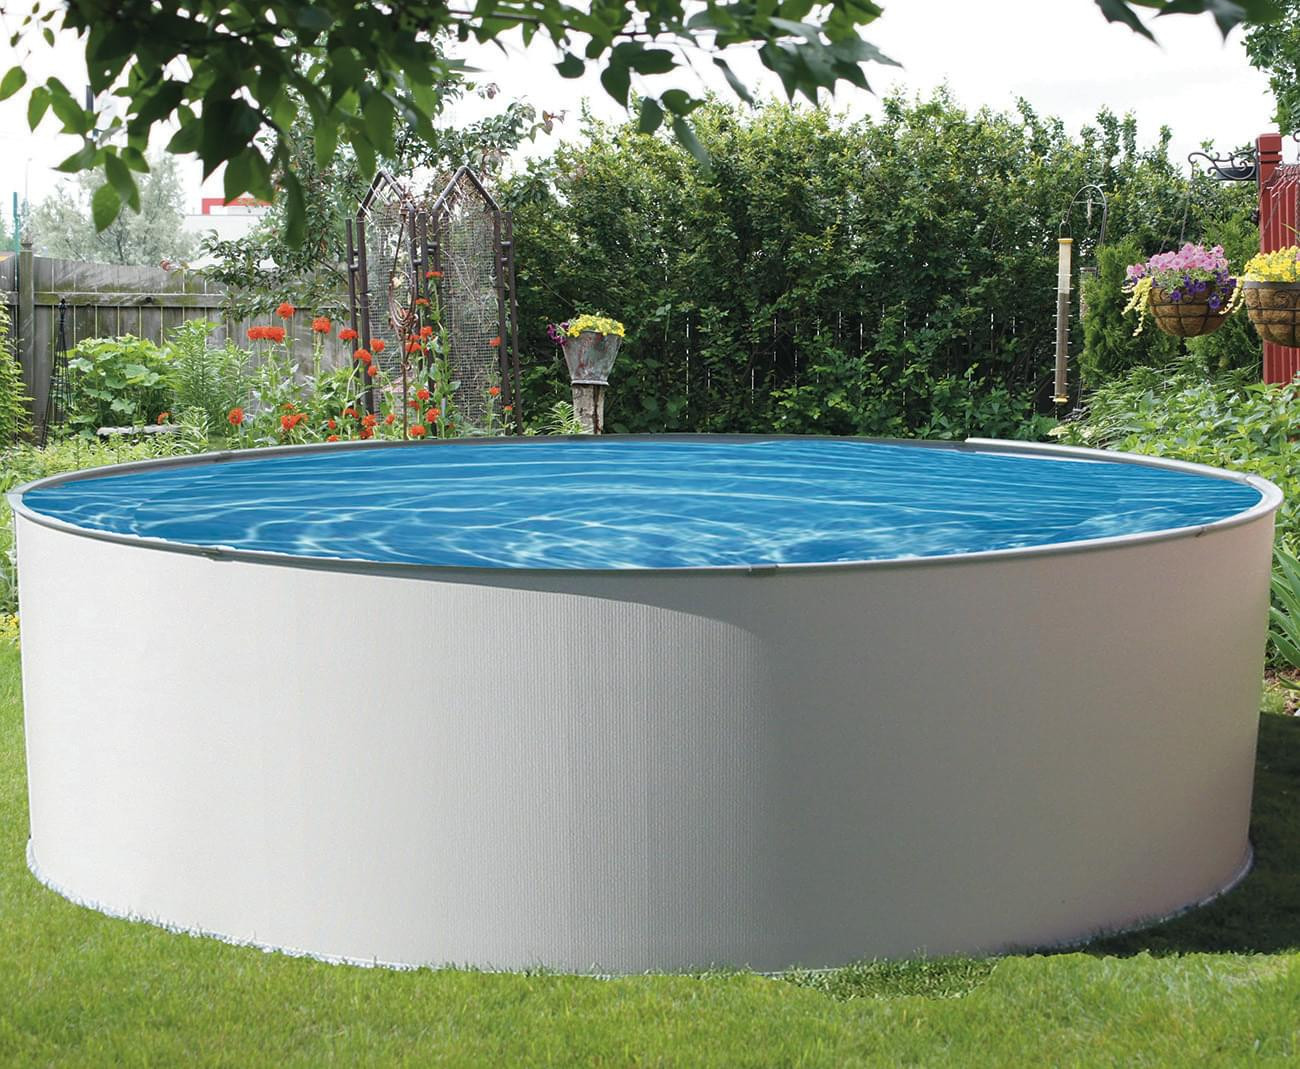 Best ideas about Above Ground Pool Supplies . Save or Pin Simplicity 12 Round Ground Pool Pool Supplies Canada Now.